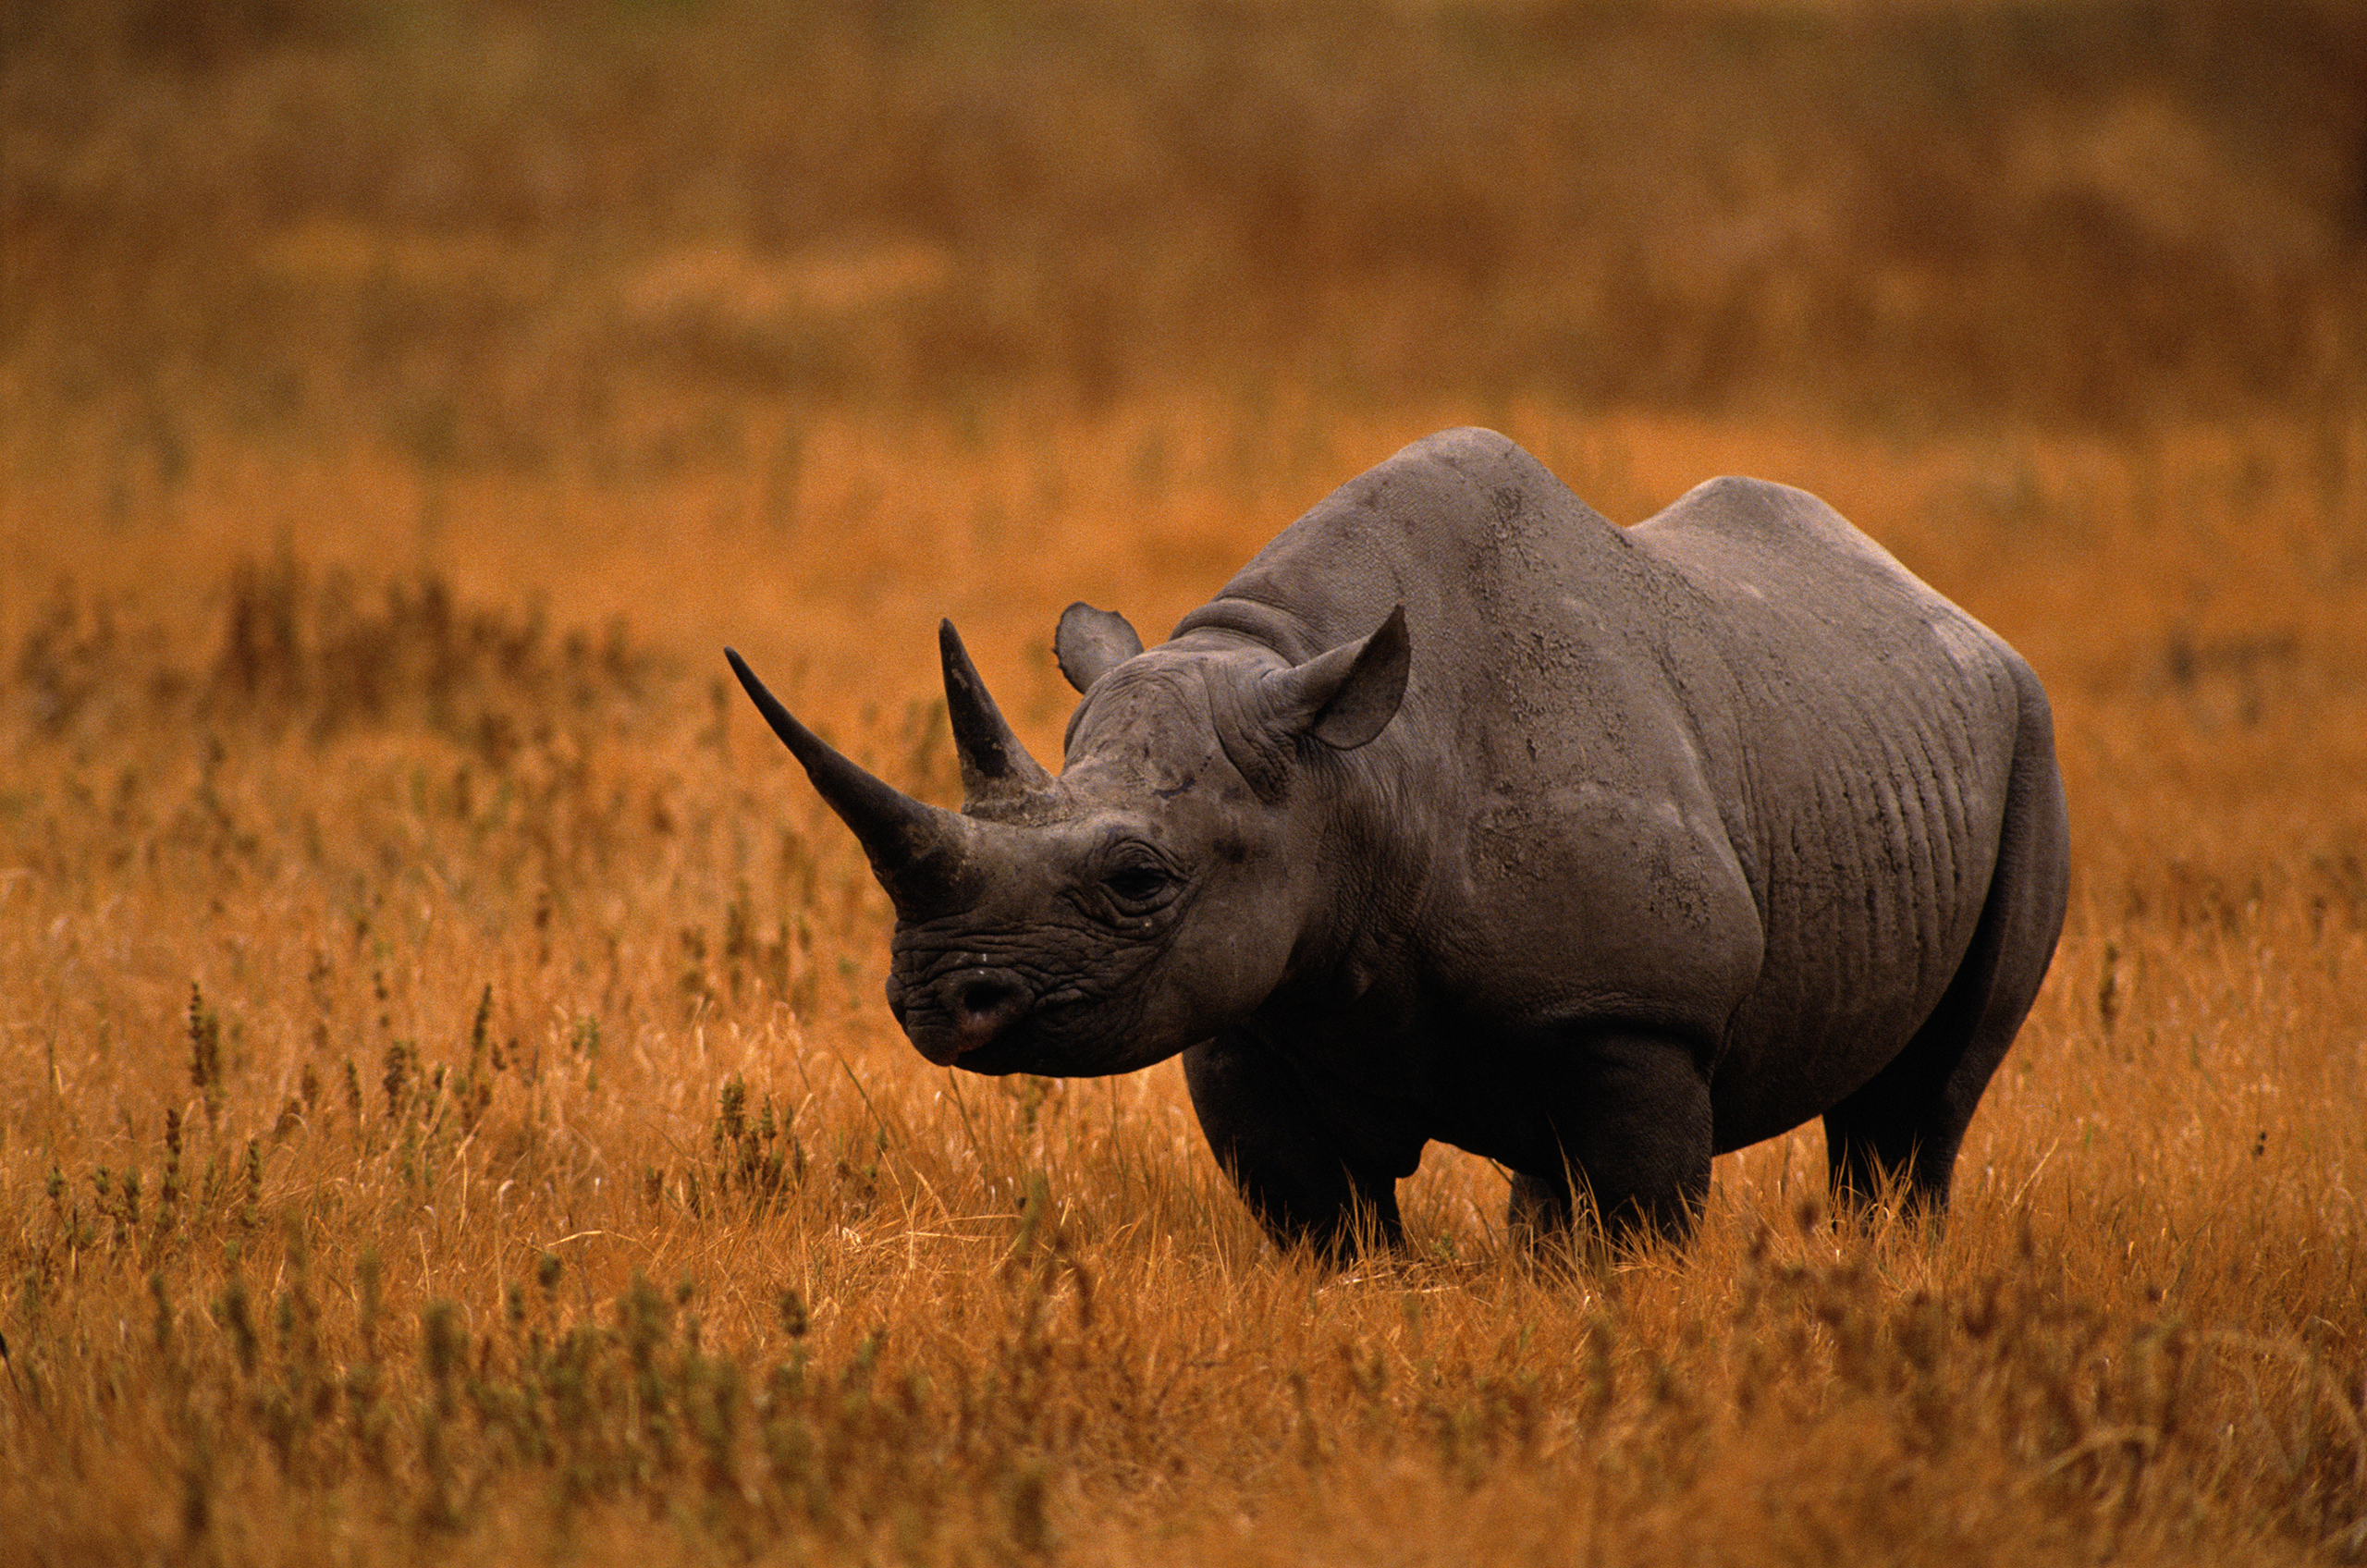 Black Rhinoceros, Tanzania. Rhinos are one of the oldest groups of mammals on the planet. Because of demand for rhino horn in Asia, between 1970 and 1992, 96% of Africa's remaining black rhinos were killed. Today, there are about 5,000 black rhinos left.